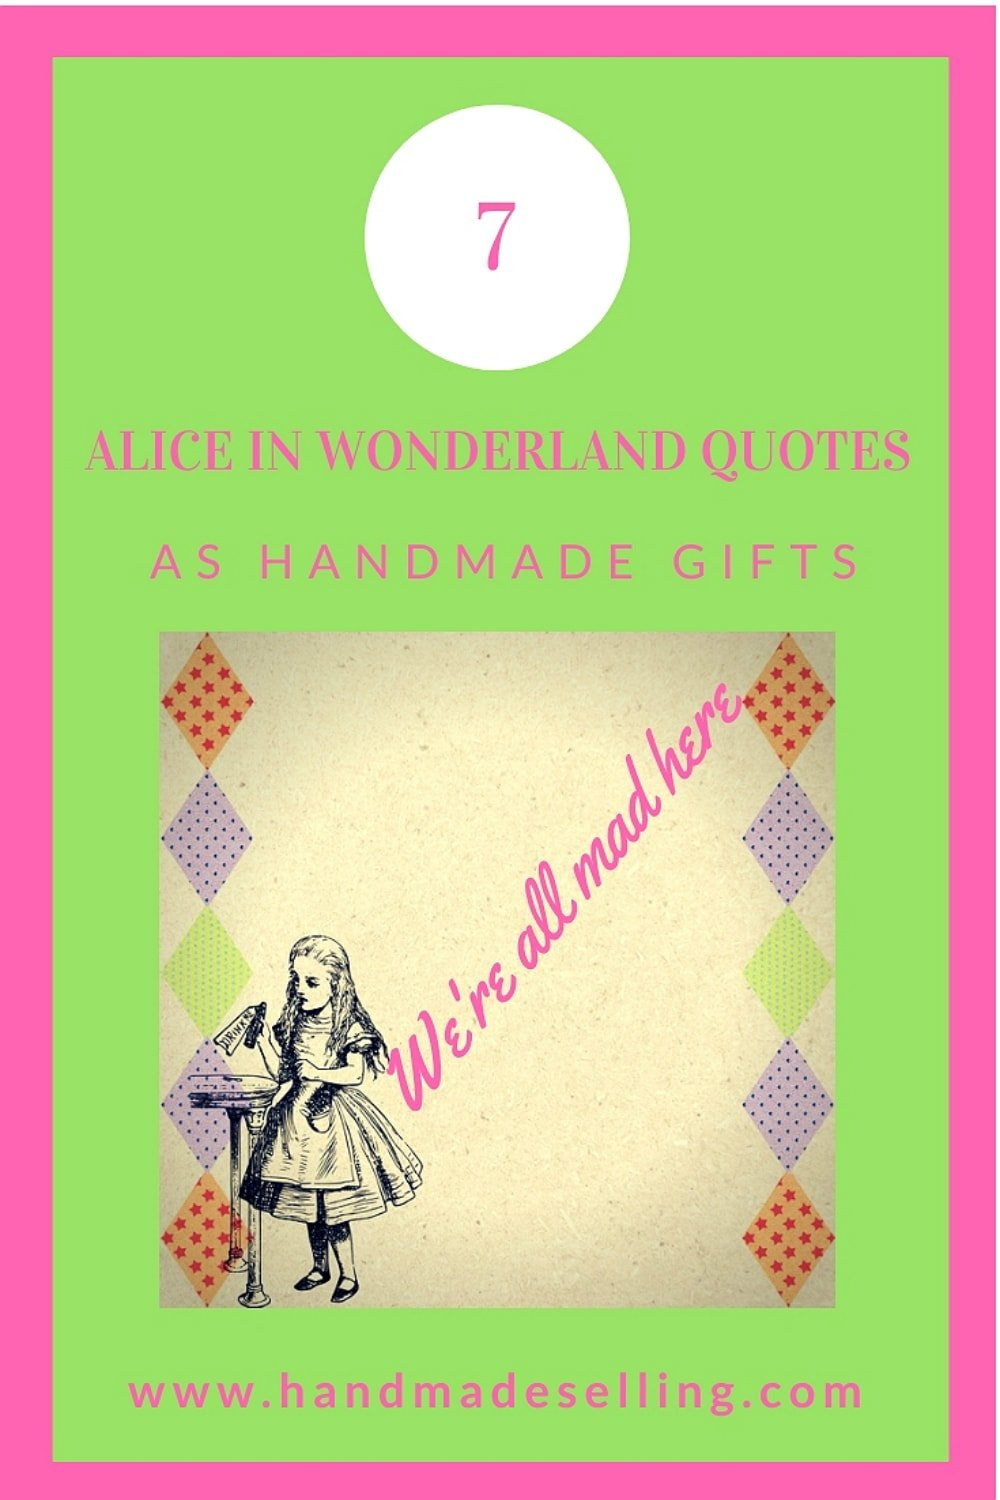 alice in wonderland quotes as gifts